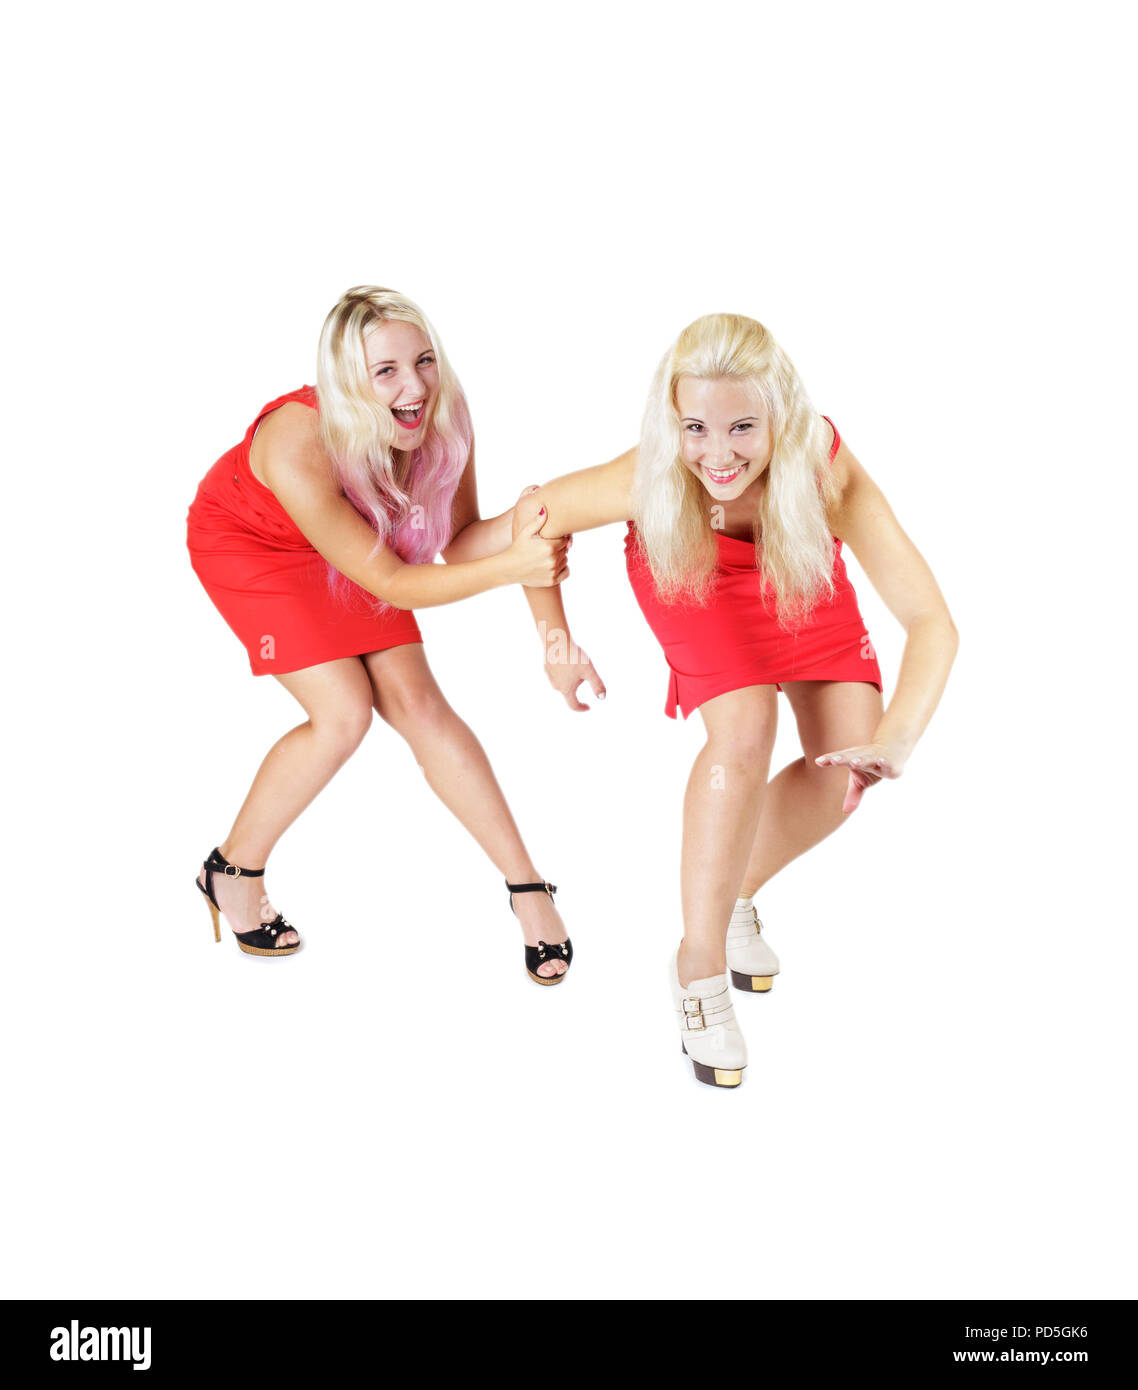 Crazy happy smiling blonde girls in red dresses on high heels isolated on white background - Stock Image